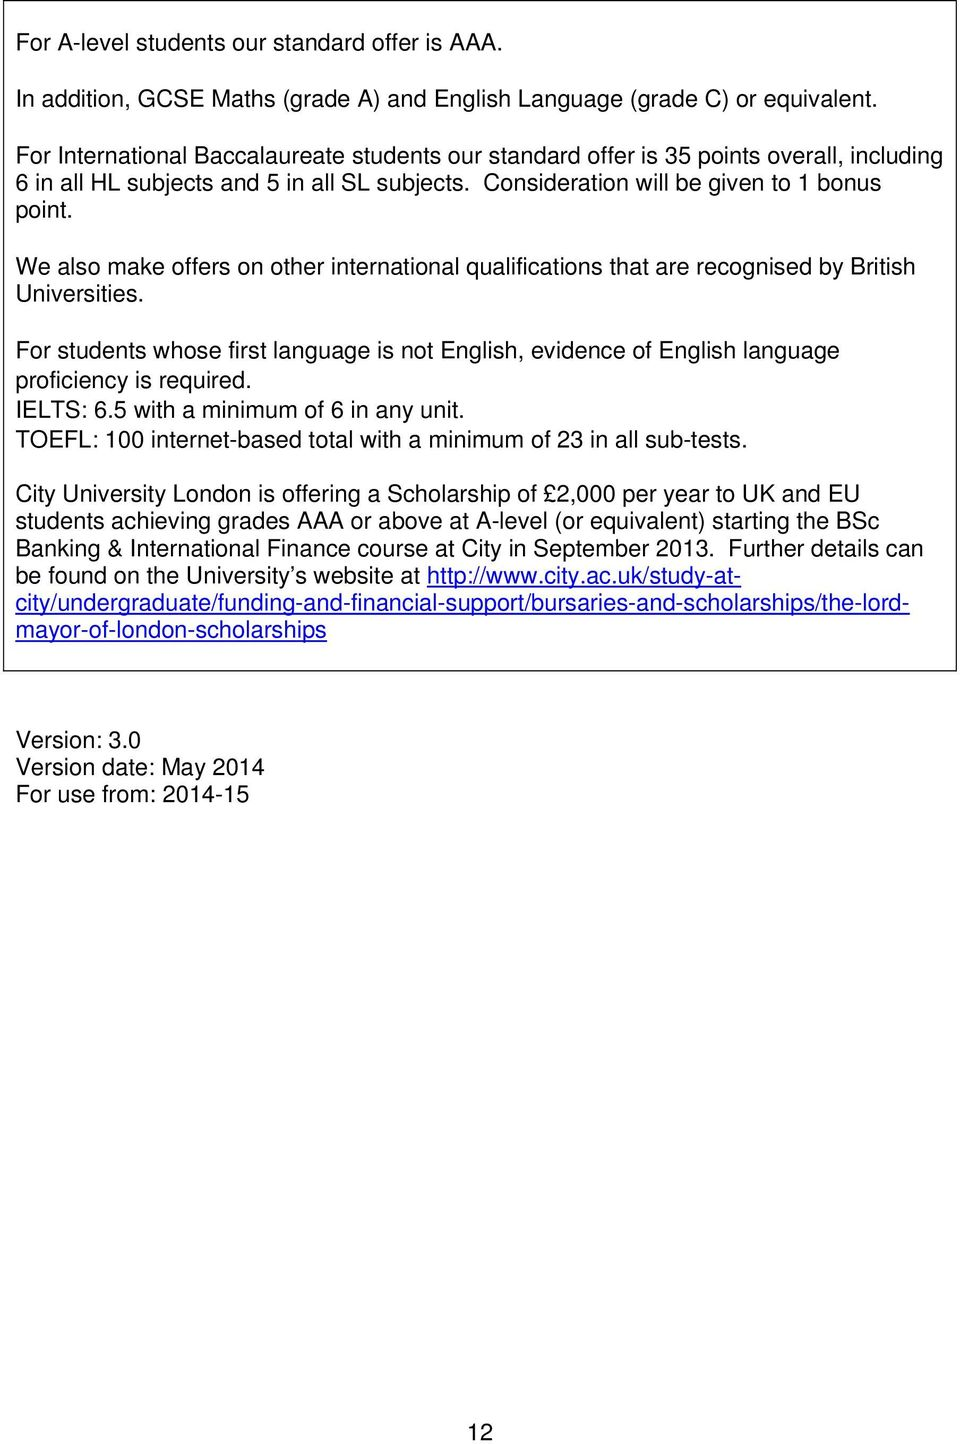 We also make offers on other international qualifications that are recognised by British Universities.